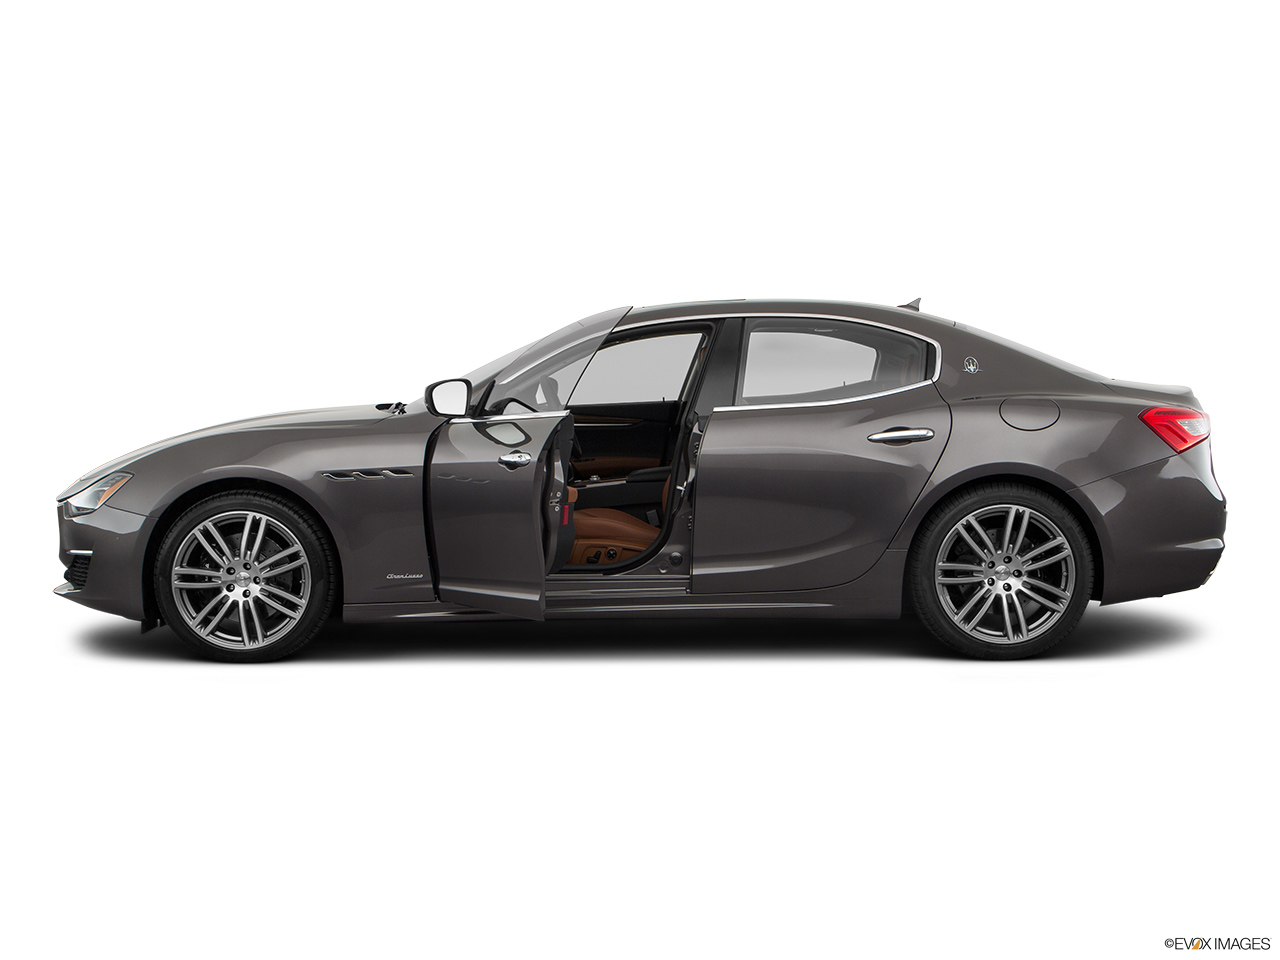 2018 Maserati Ghibli  S Granlusso Driver's side profile with drivers side door open.